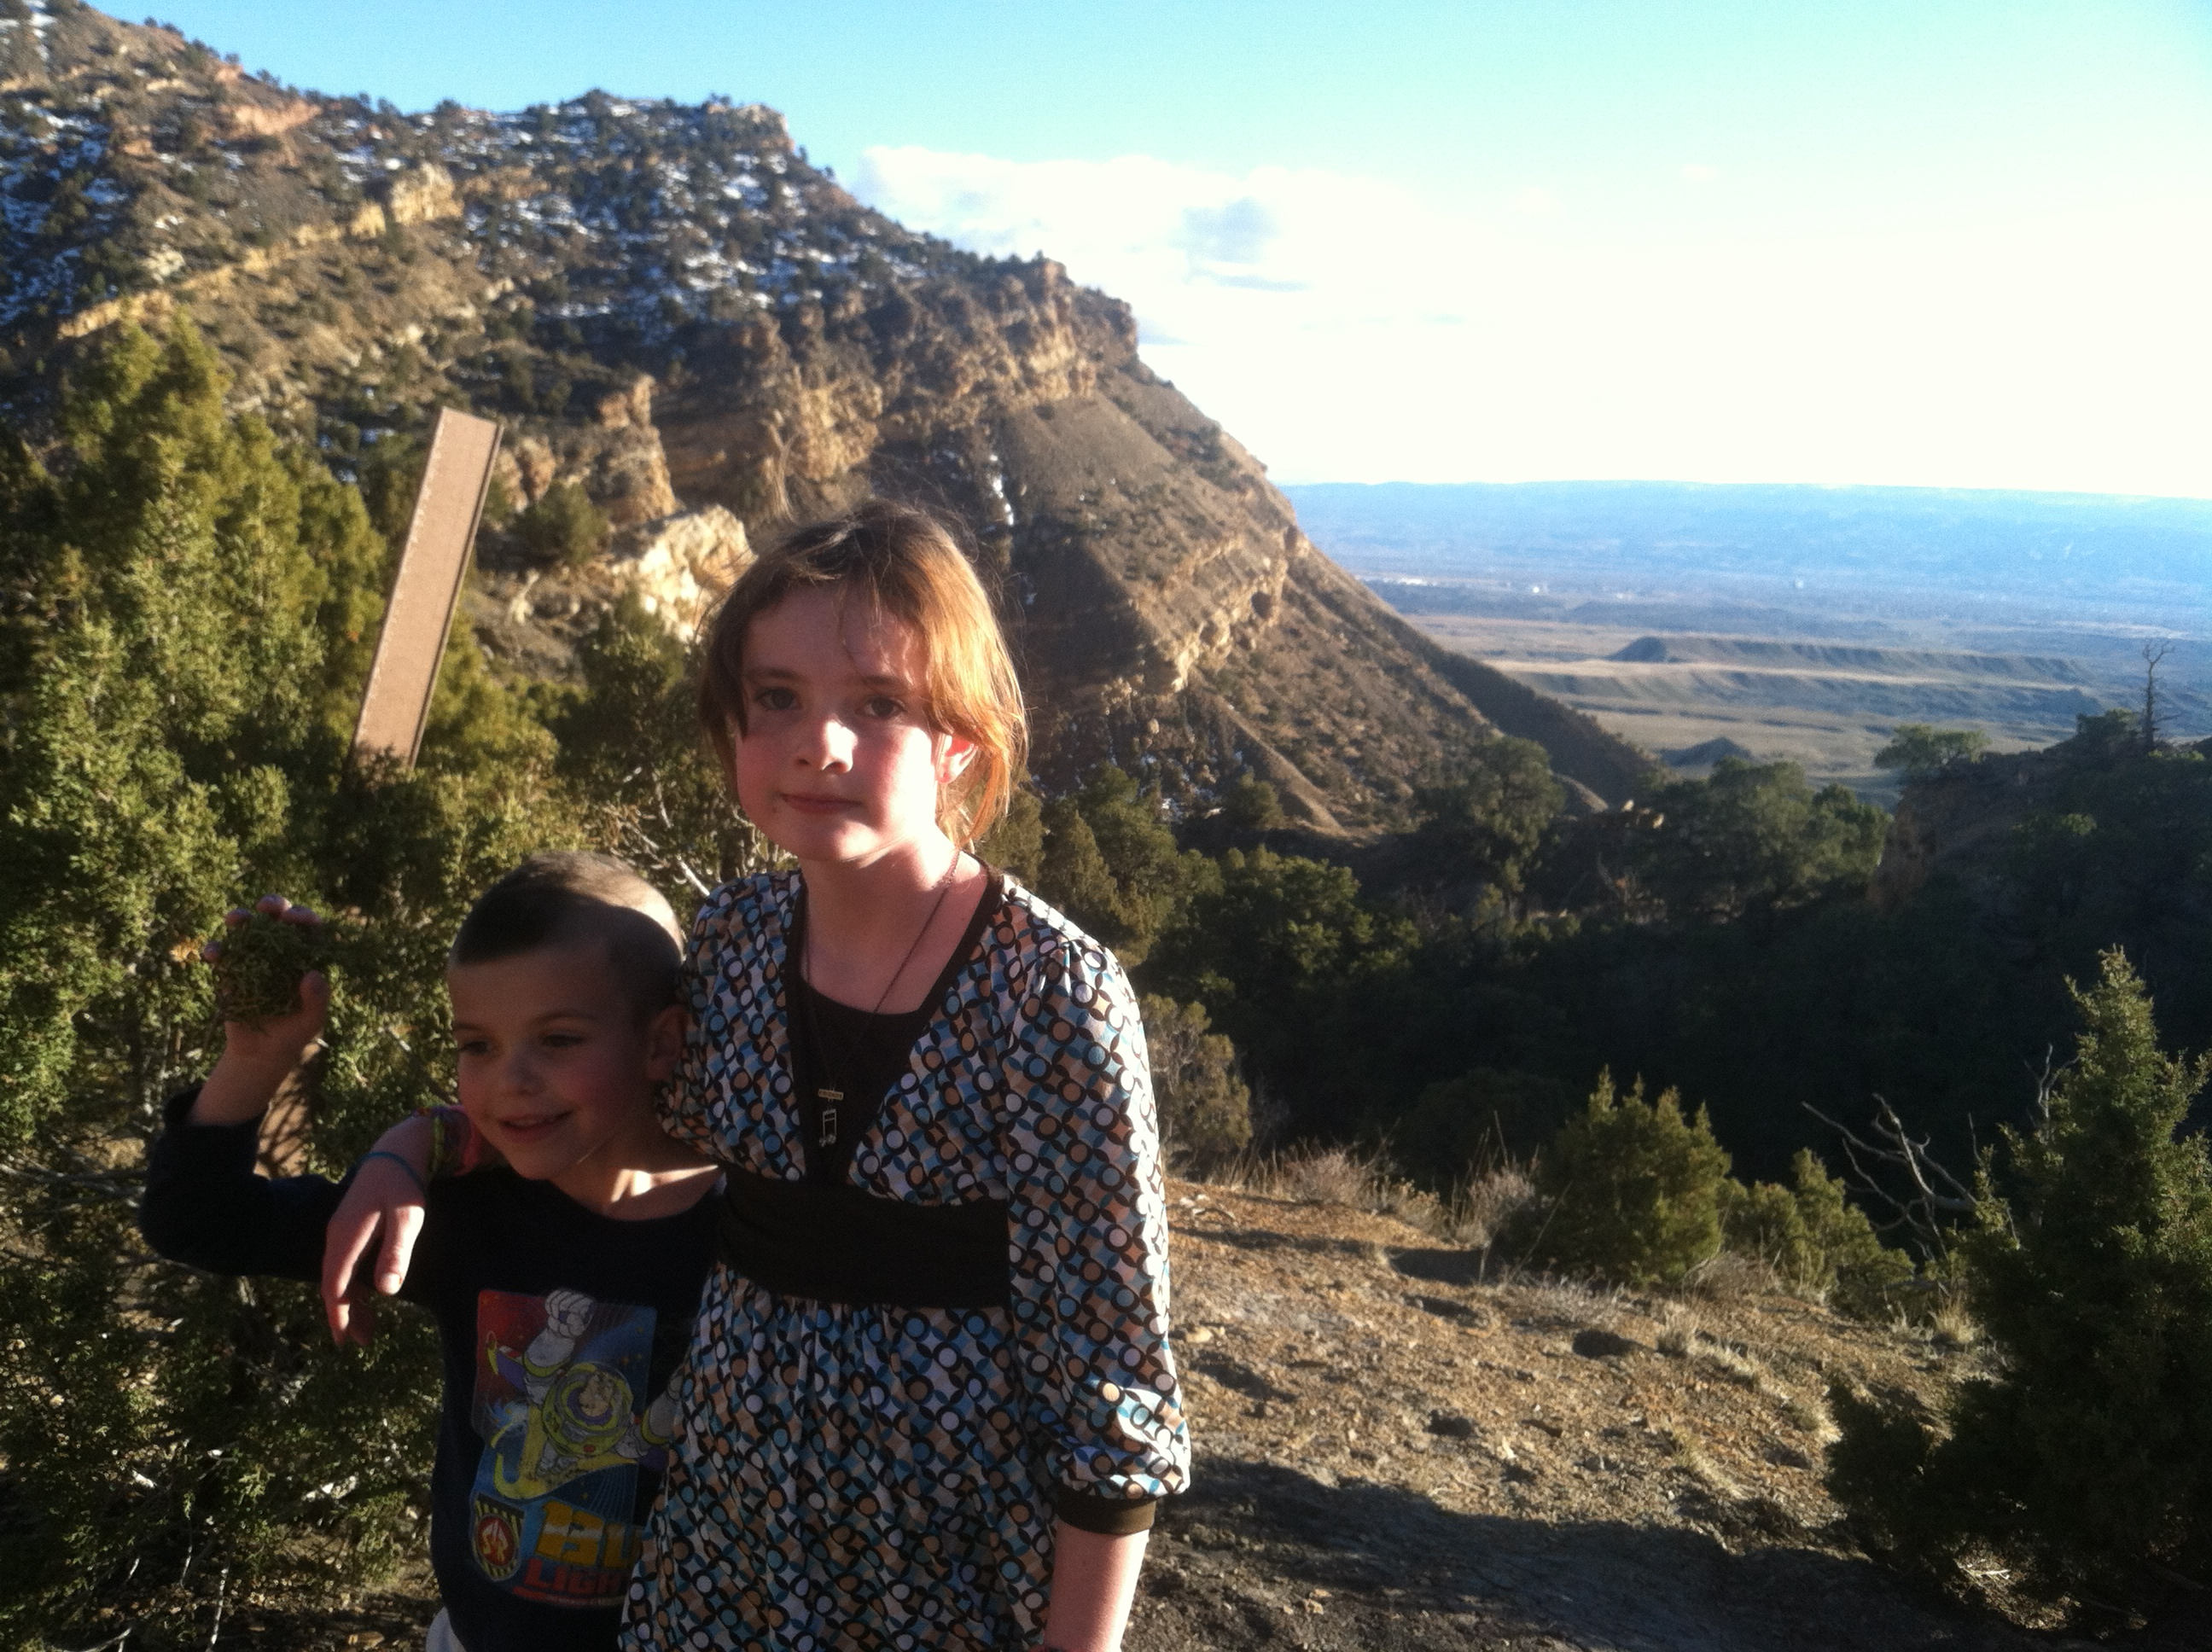 Connor and Trin with the valley in the back.